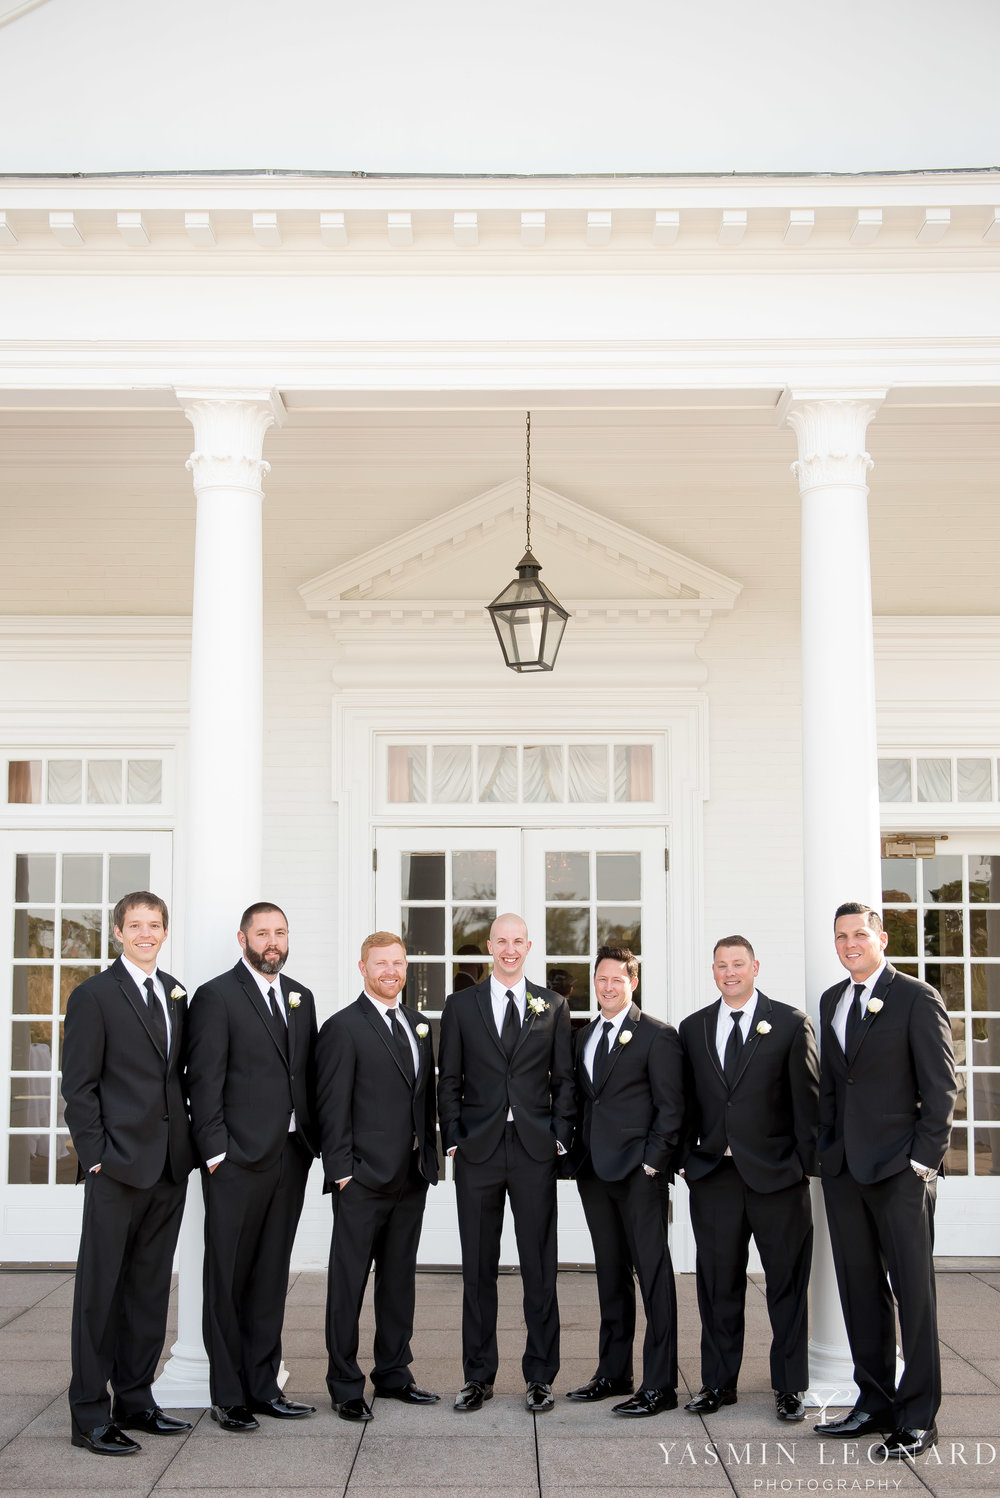 Forsyth Country Club - Winston Salem, NC - NC Wedding Photographer - Winston Salem Weddings - Winston Salem Wedding Venues-16.jpg